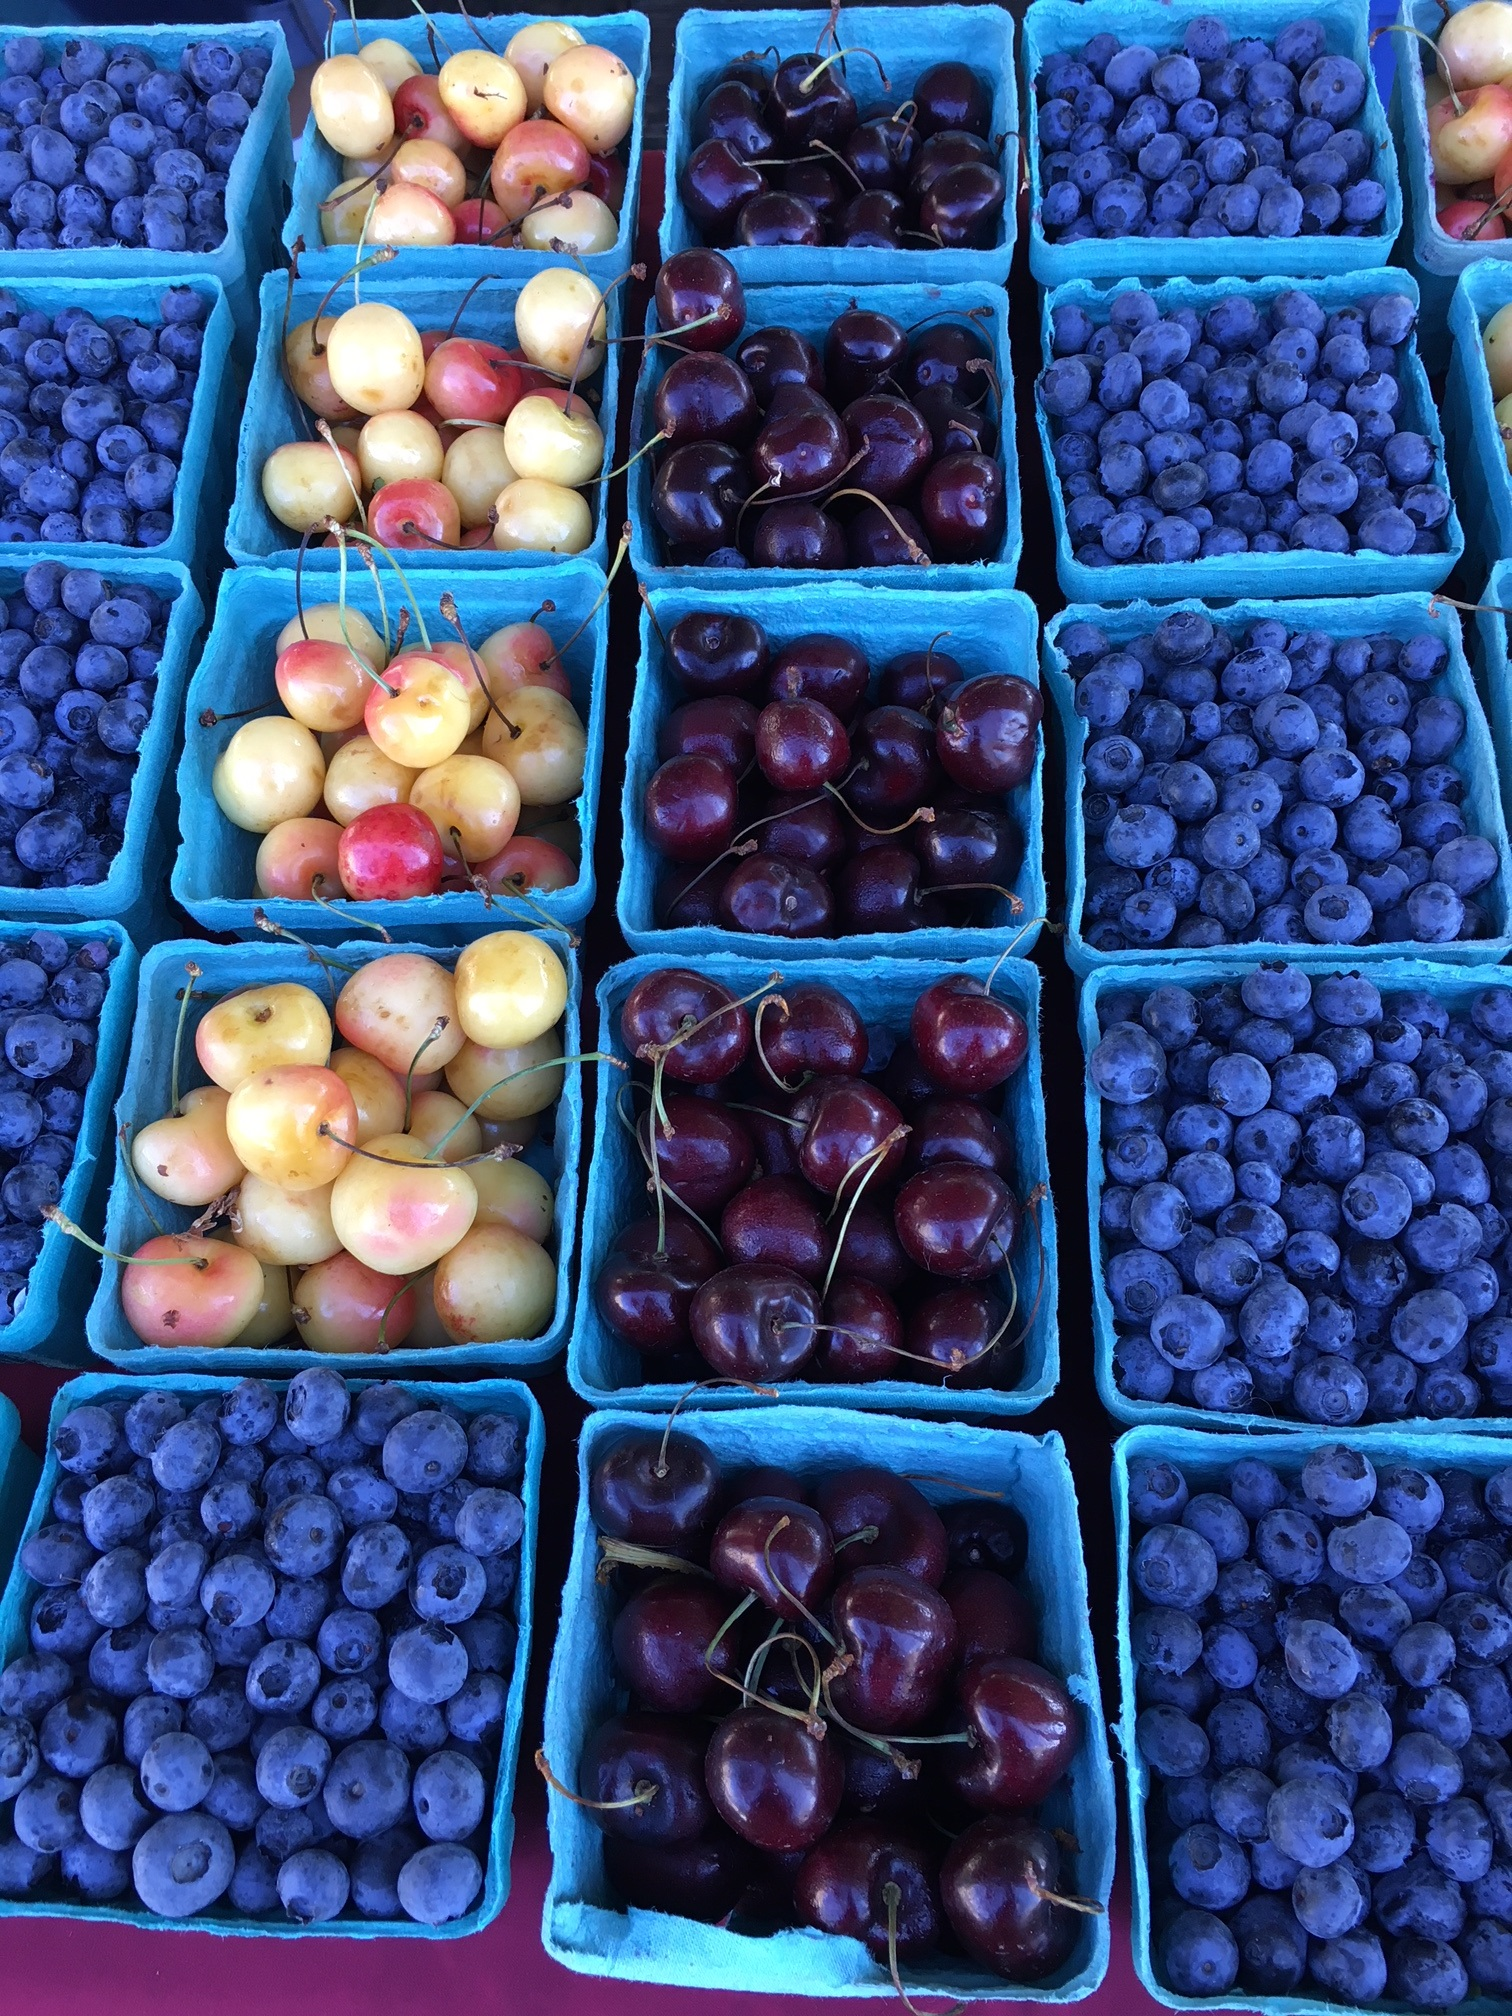 boxes of blueberries and cherries